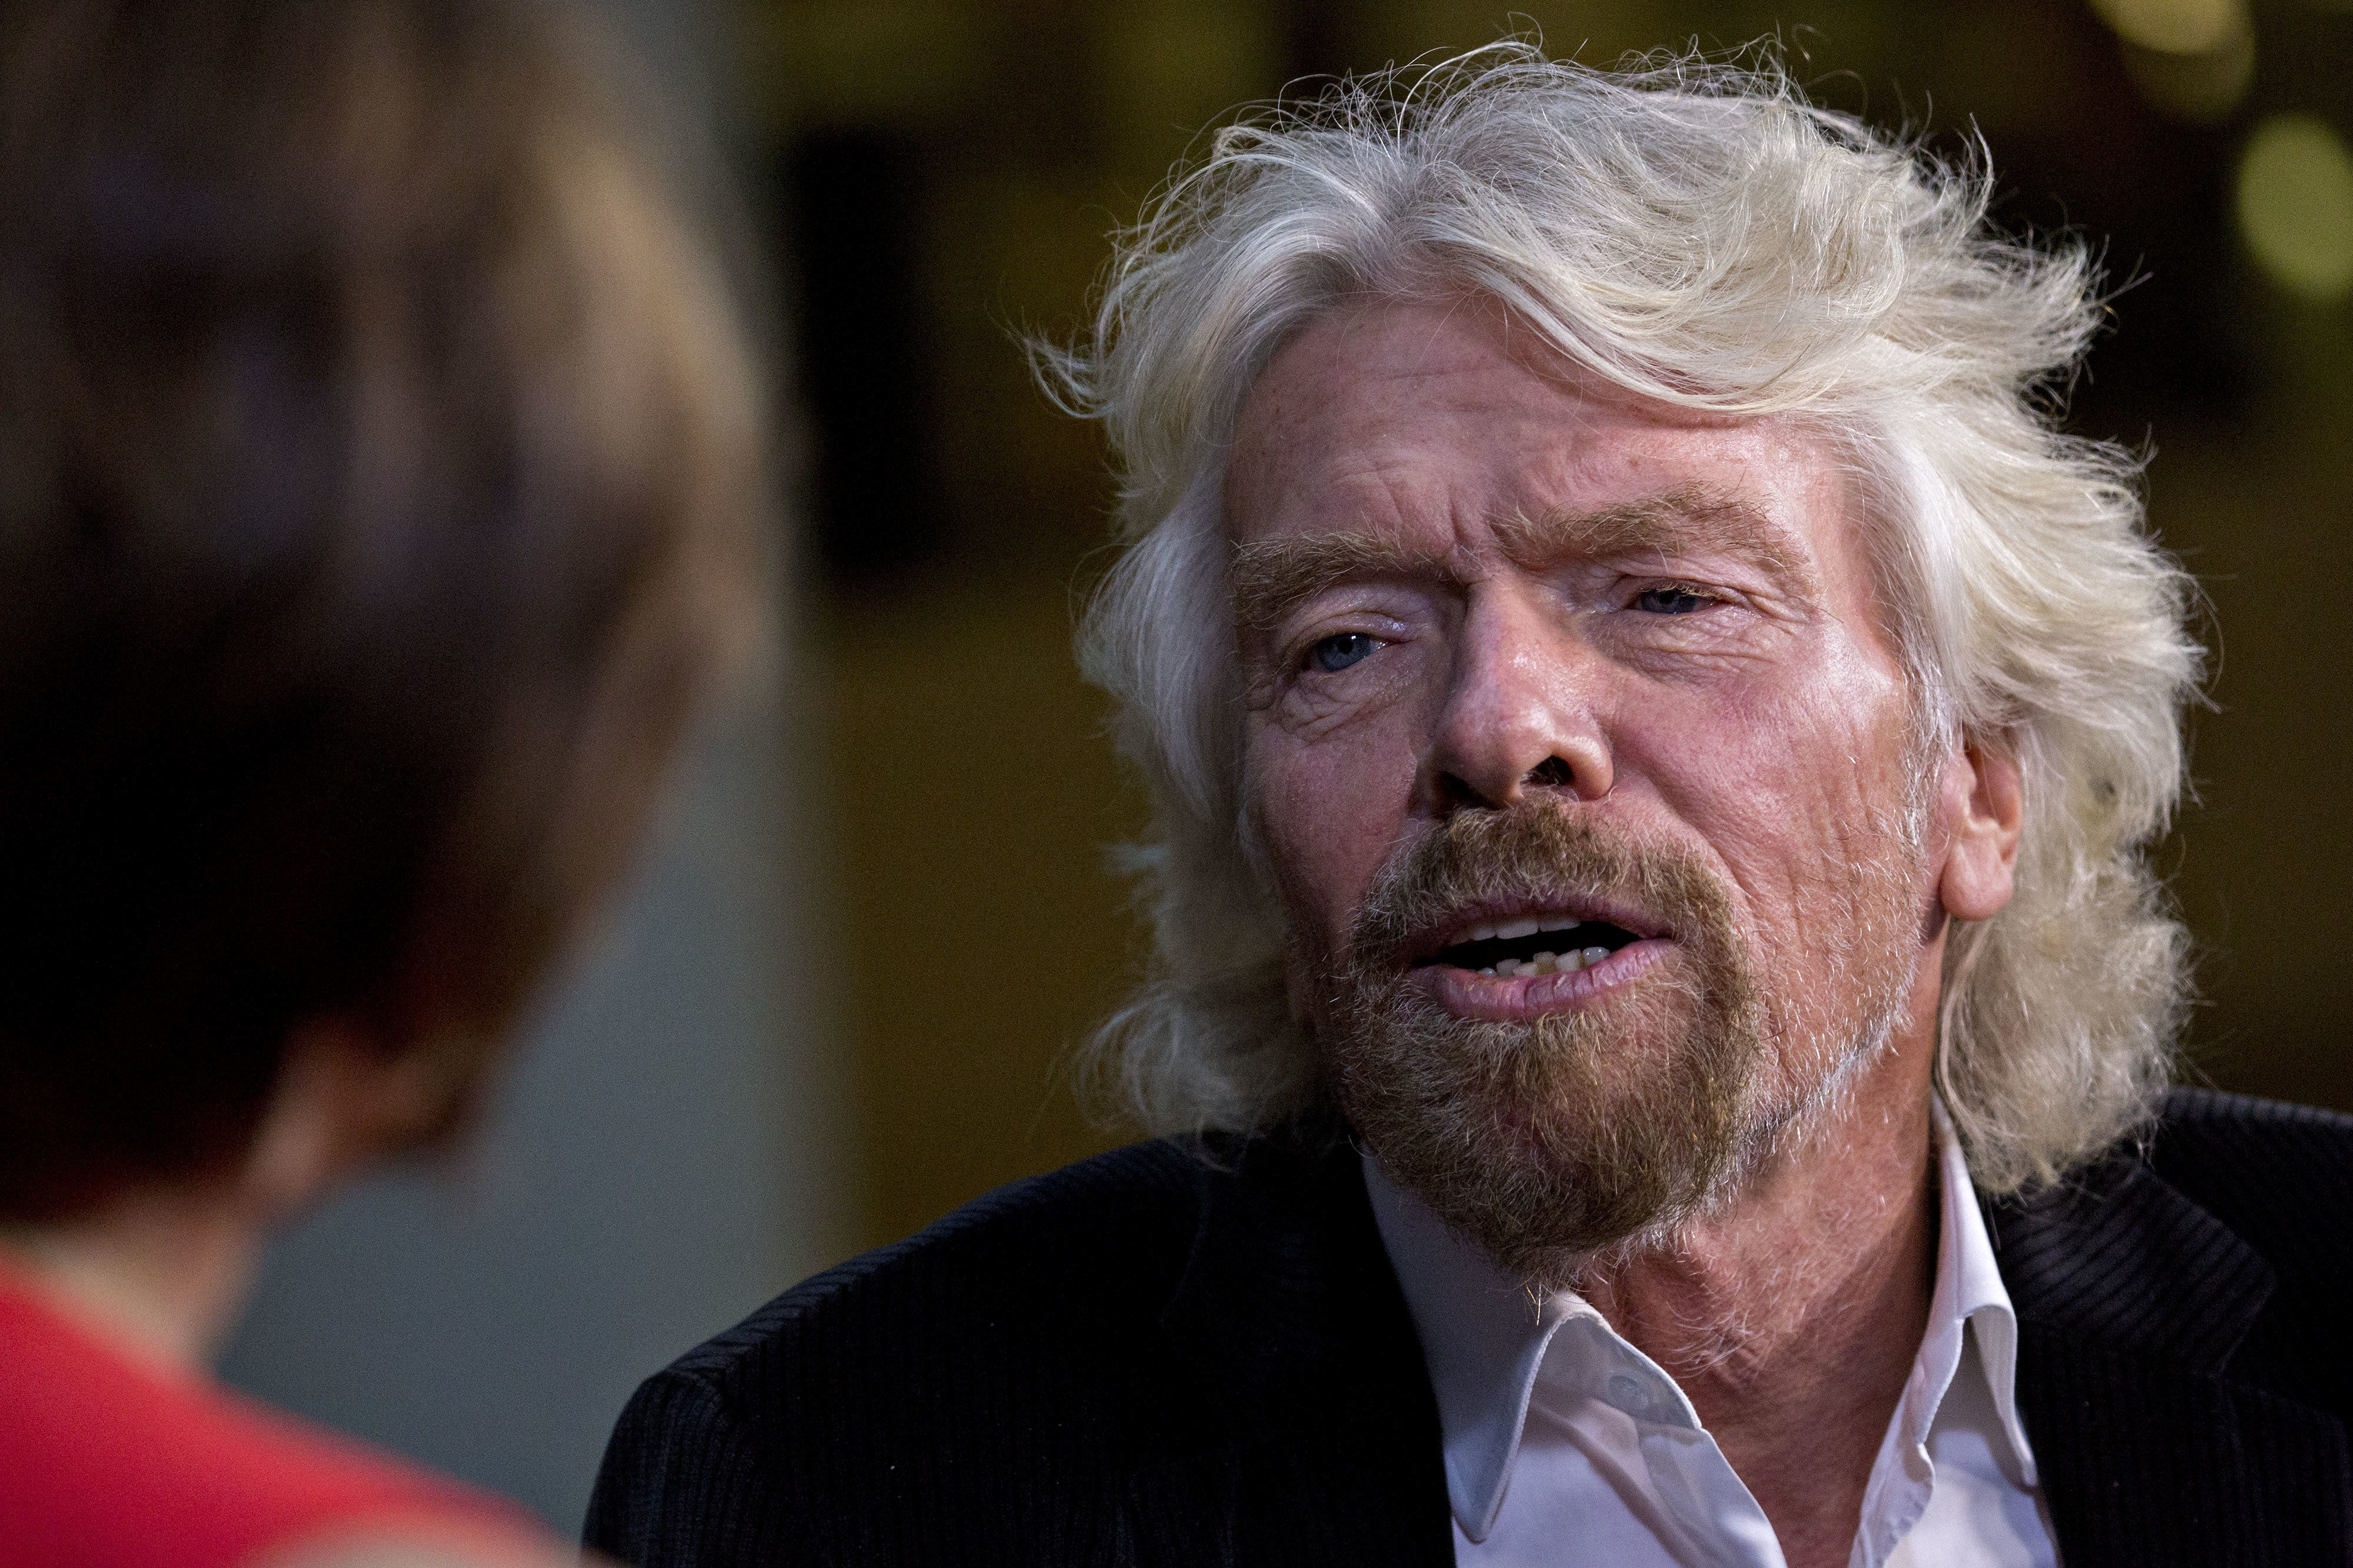 Richard Branson, founder and president of Virgin Atlantic Airways, has revealed that he was targeted by a fraudster who tried